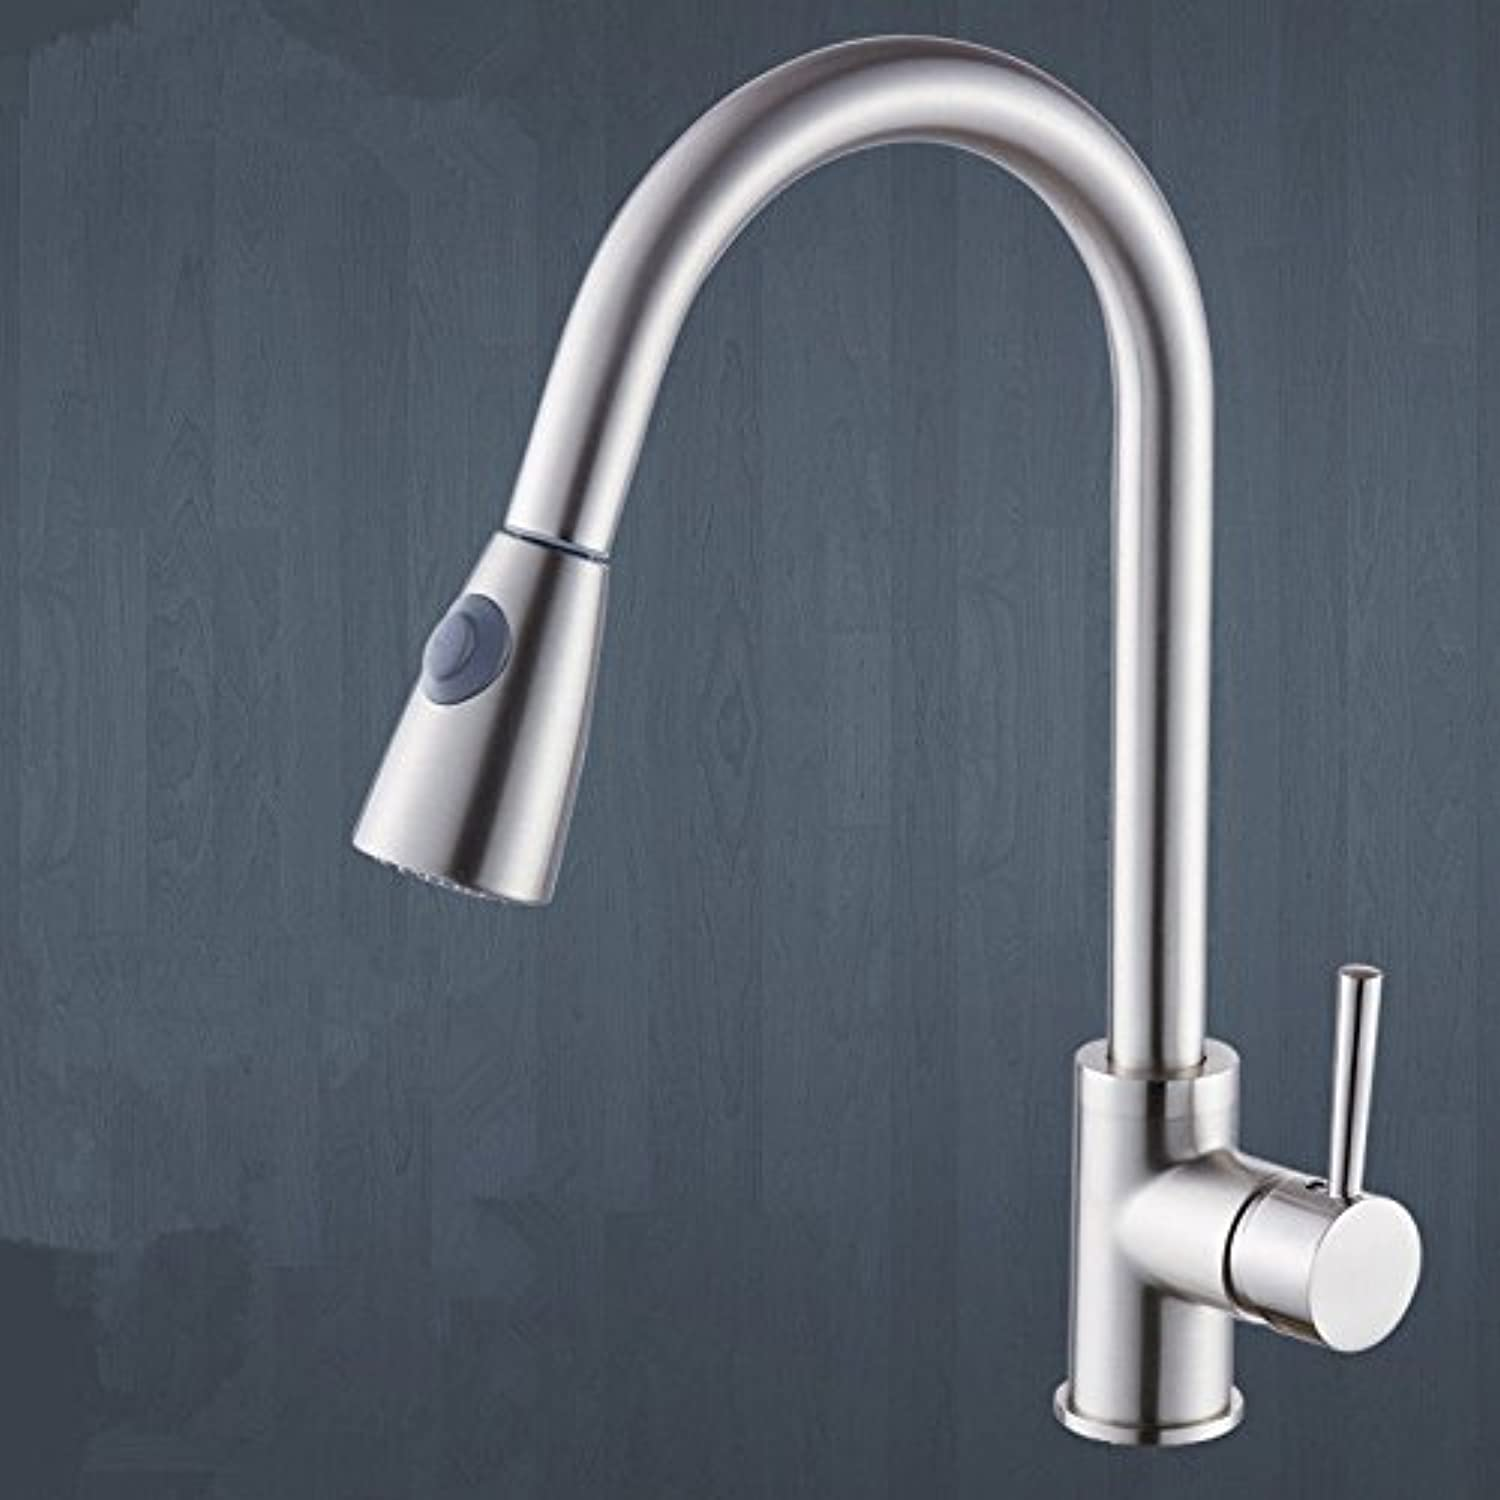 AQMMi Bathroom Sink Mixer Tap Brass Pull-Out Hot and Cold Water Antique Brushed Single Lever Taps for Bathroom Sink